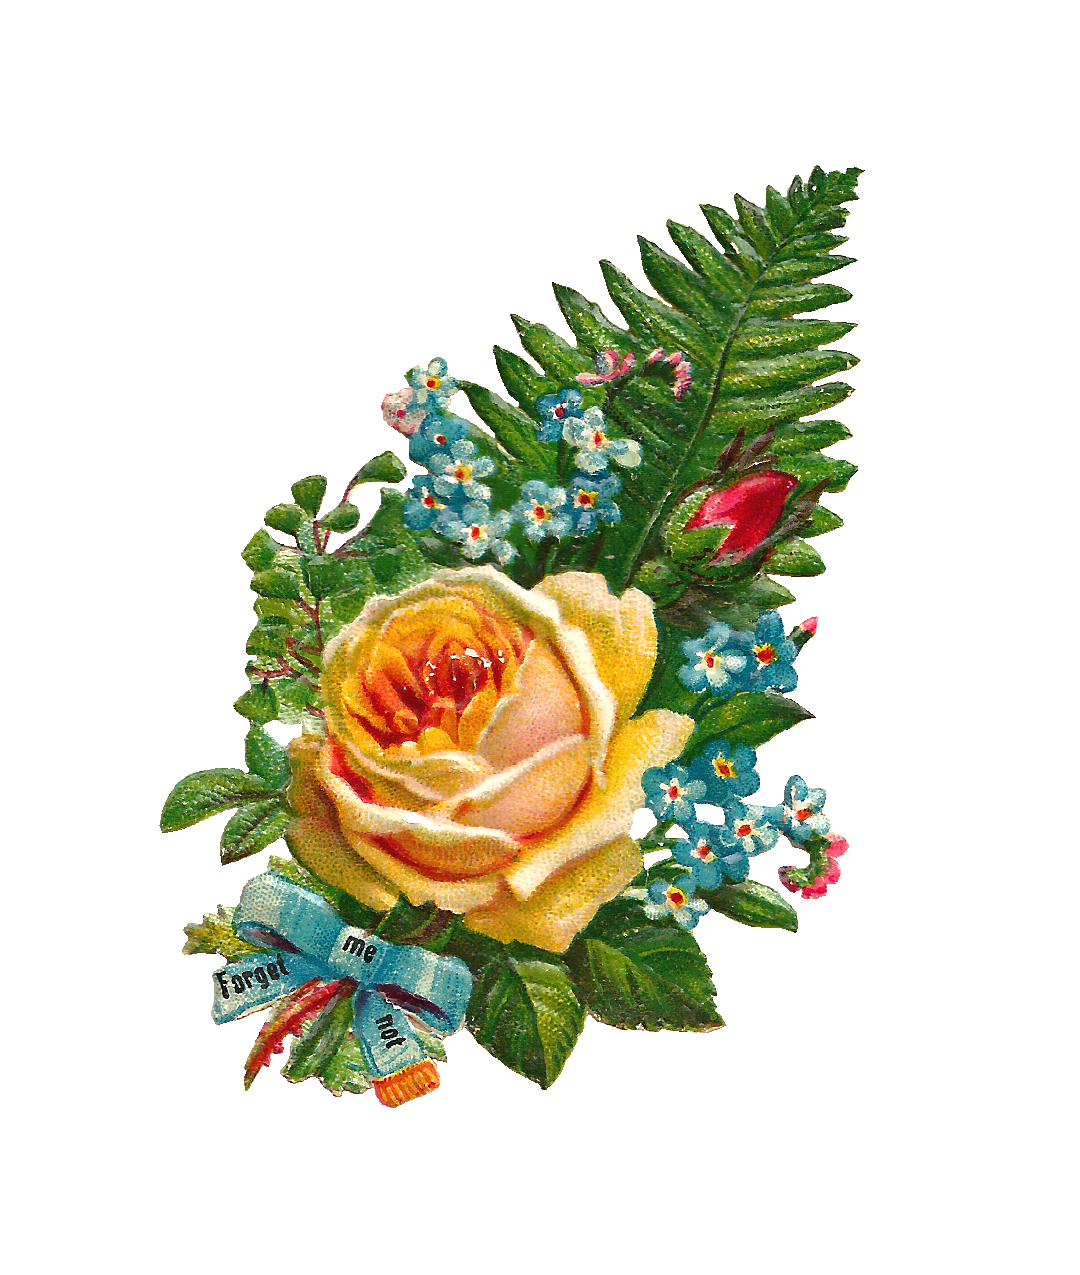 Rose clipart head. Birthday flowers png hd